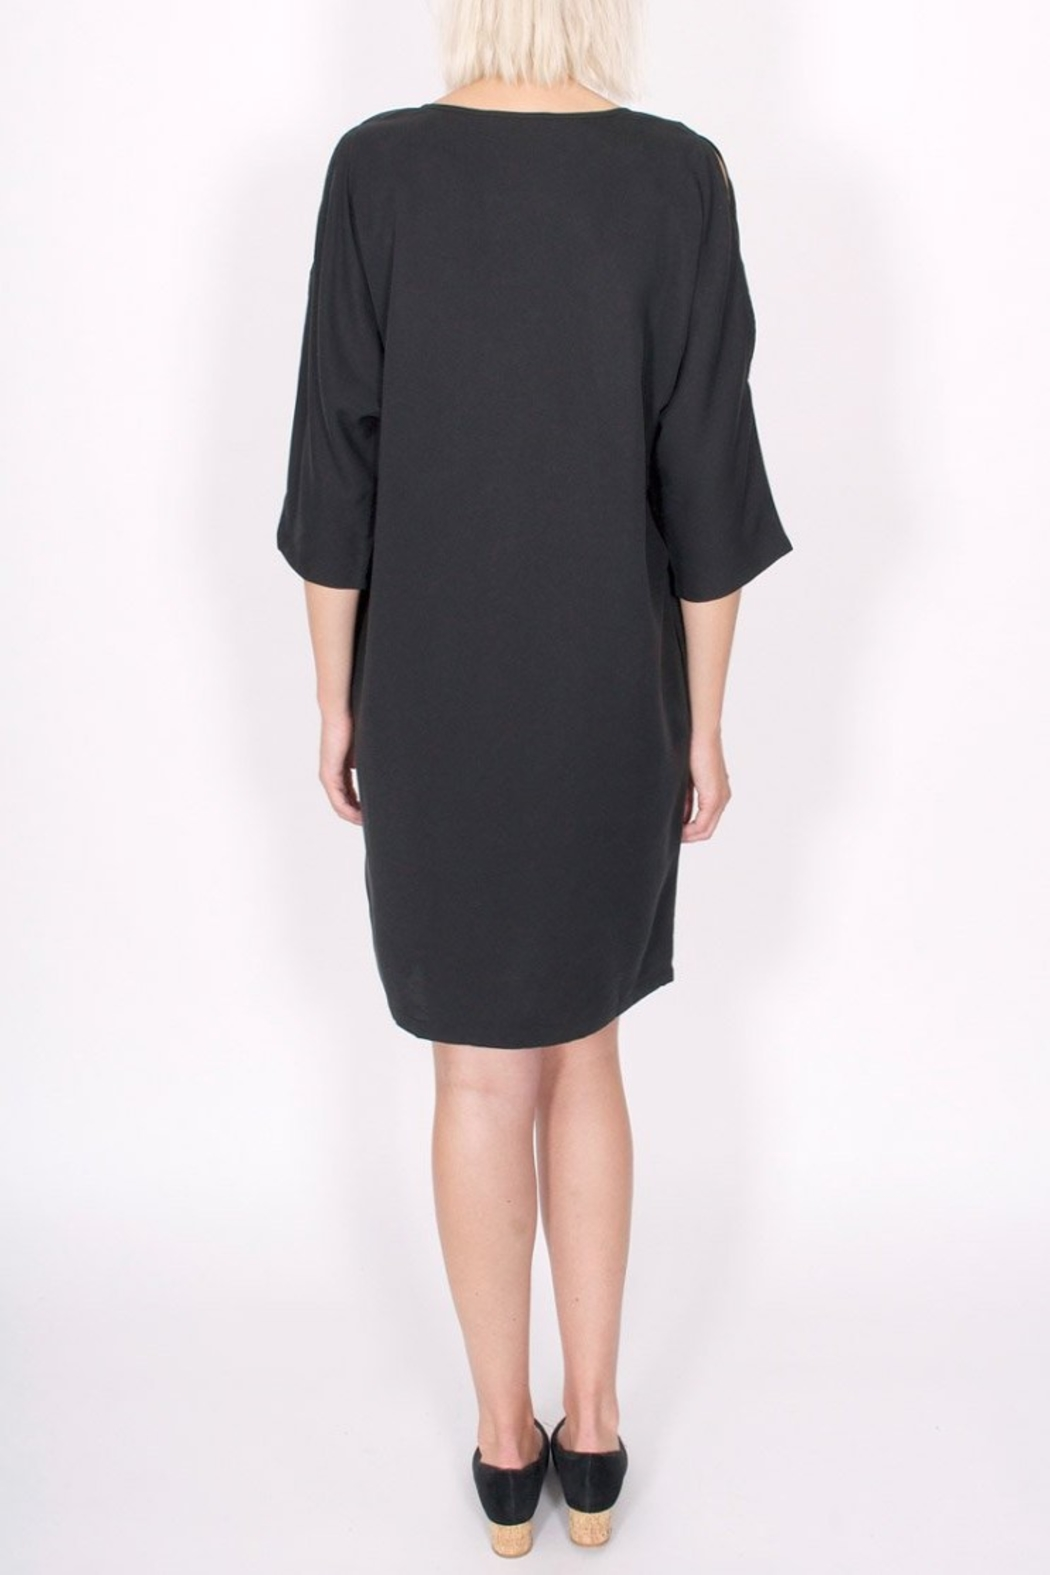 Storm & Marie Manolo Dress - Side Cropped Image